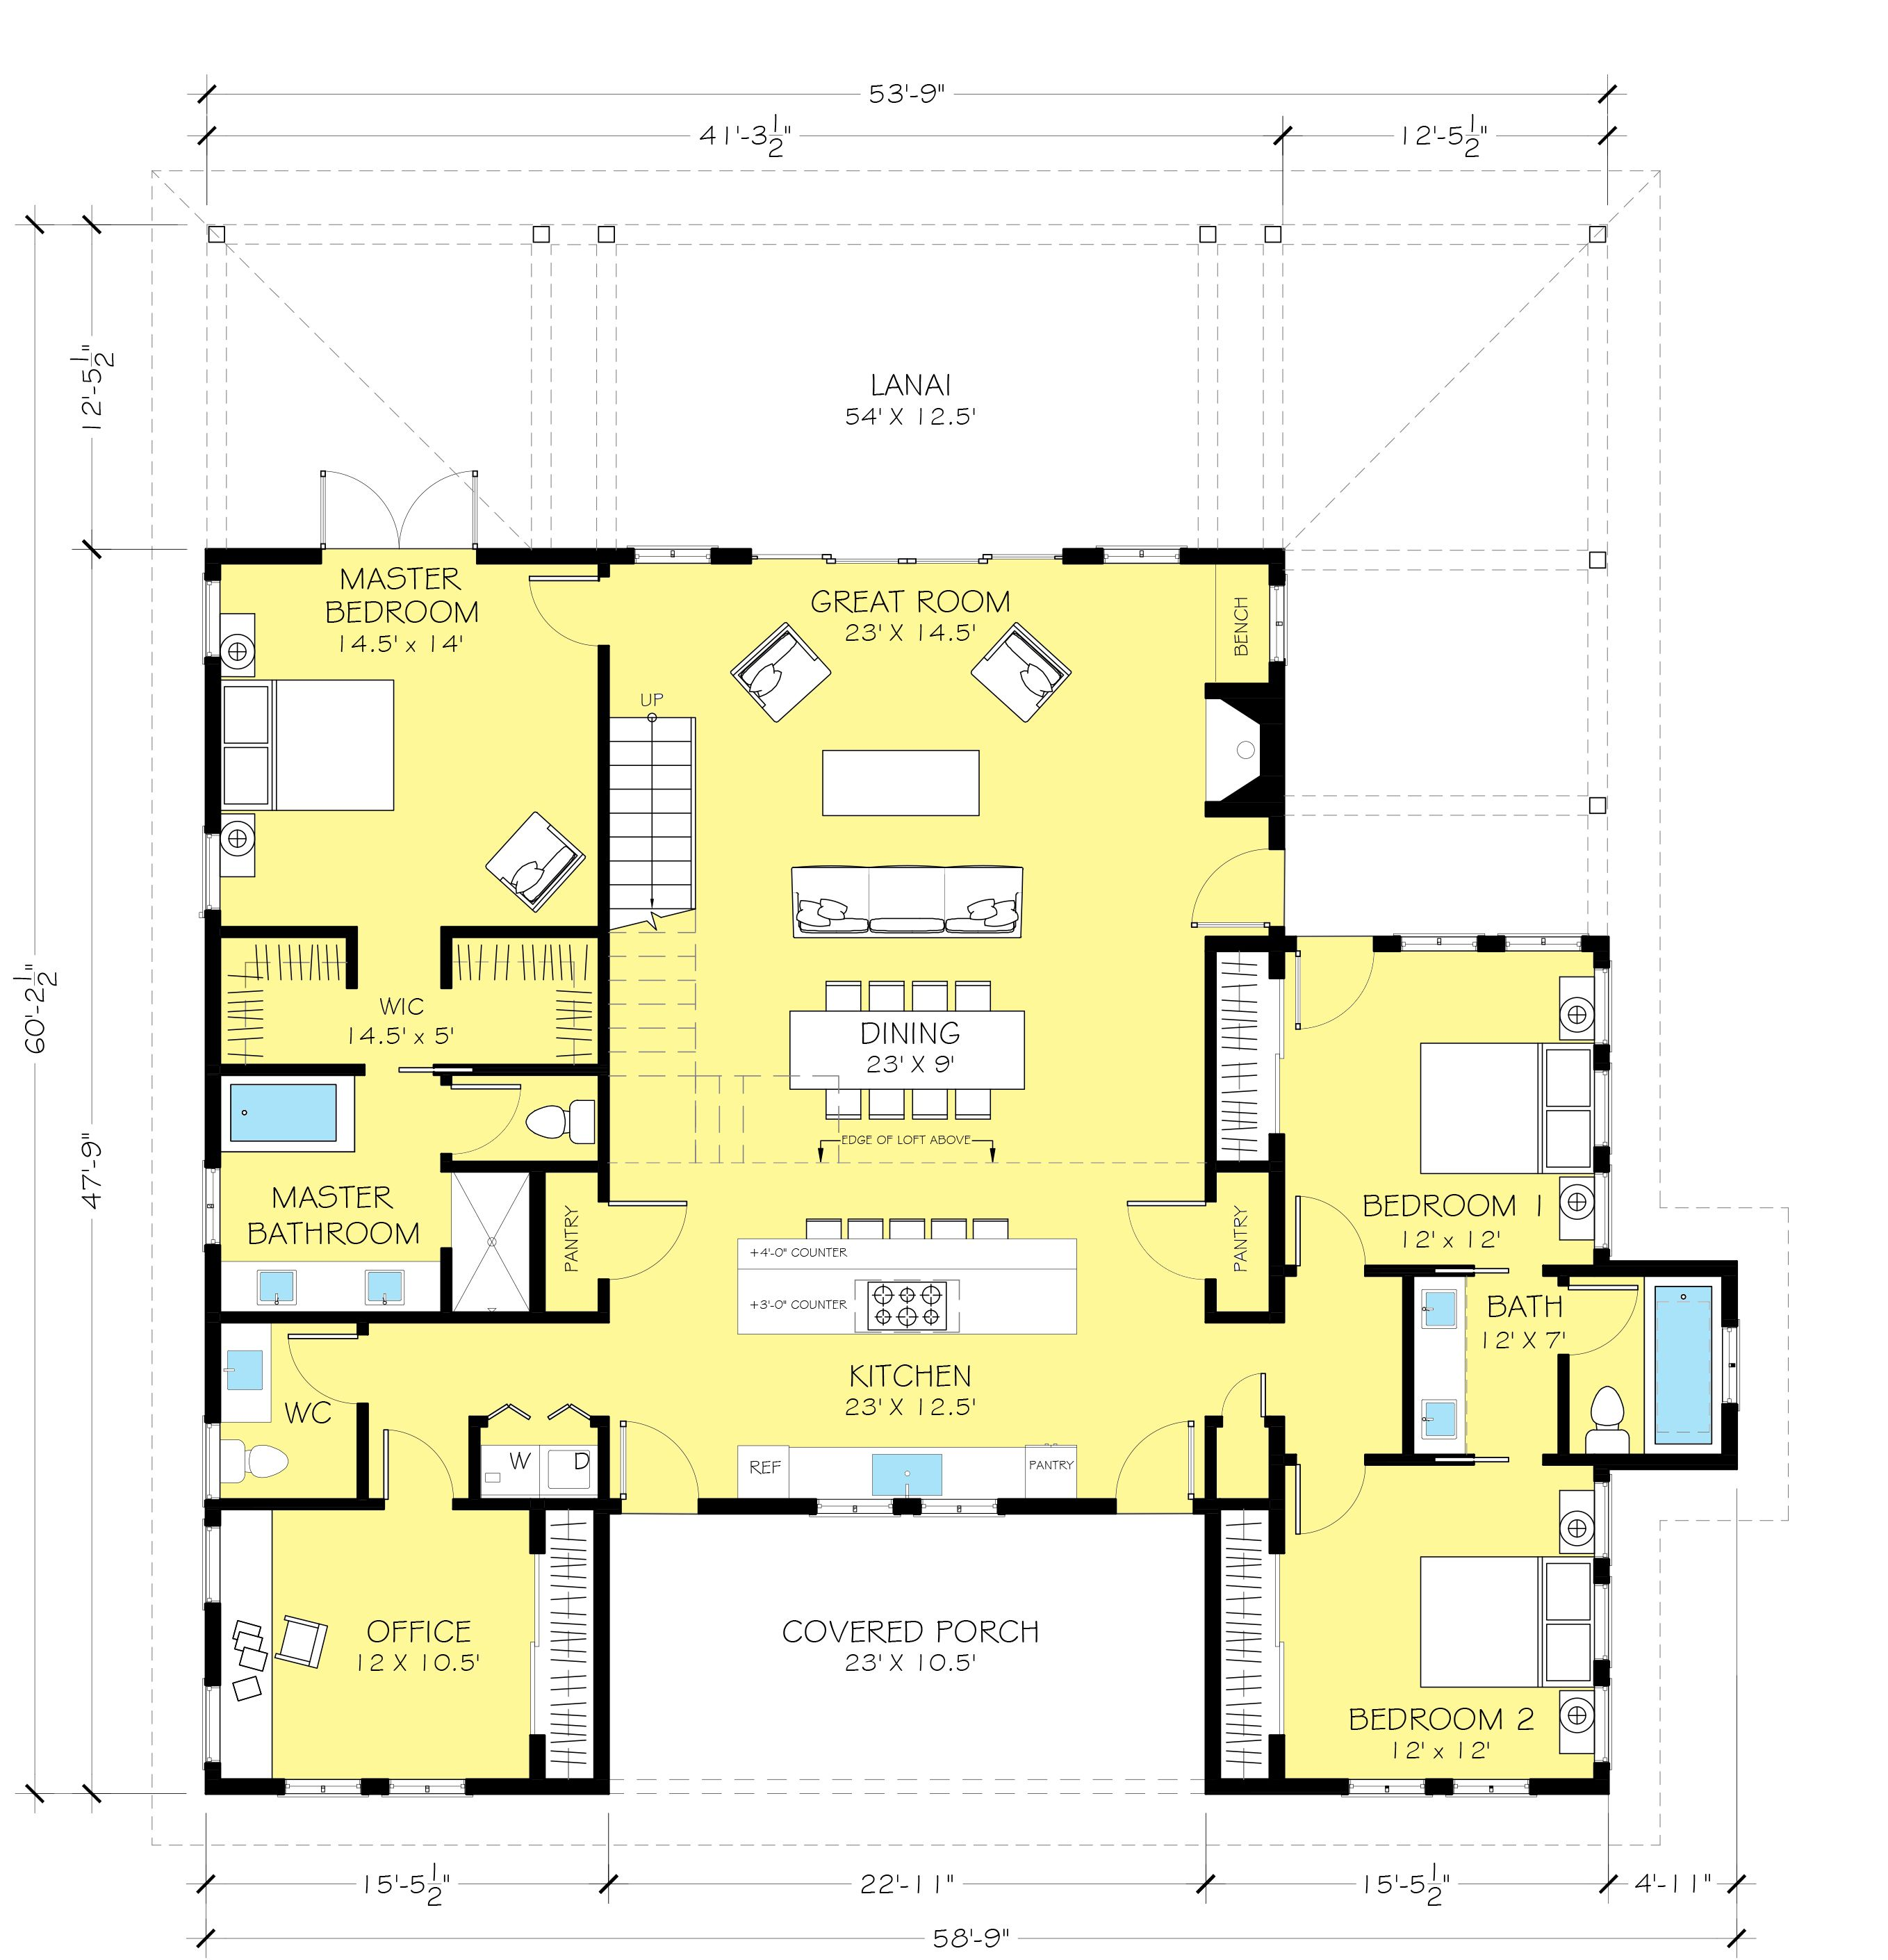 Barn house plan with stair to loft by architect nicholas for Barndominium plans with loft